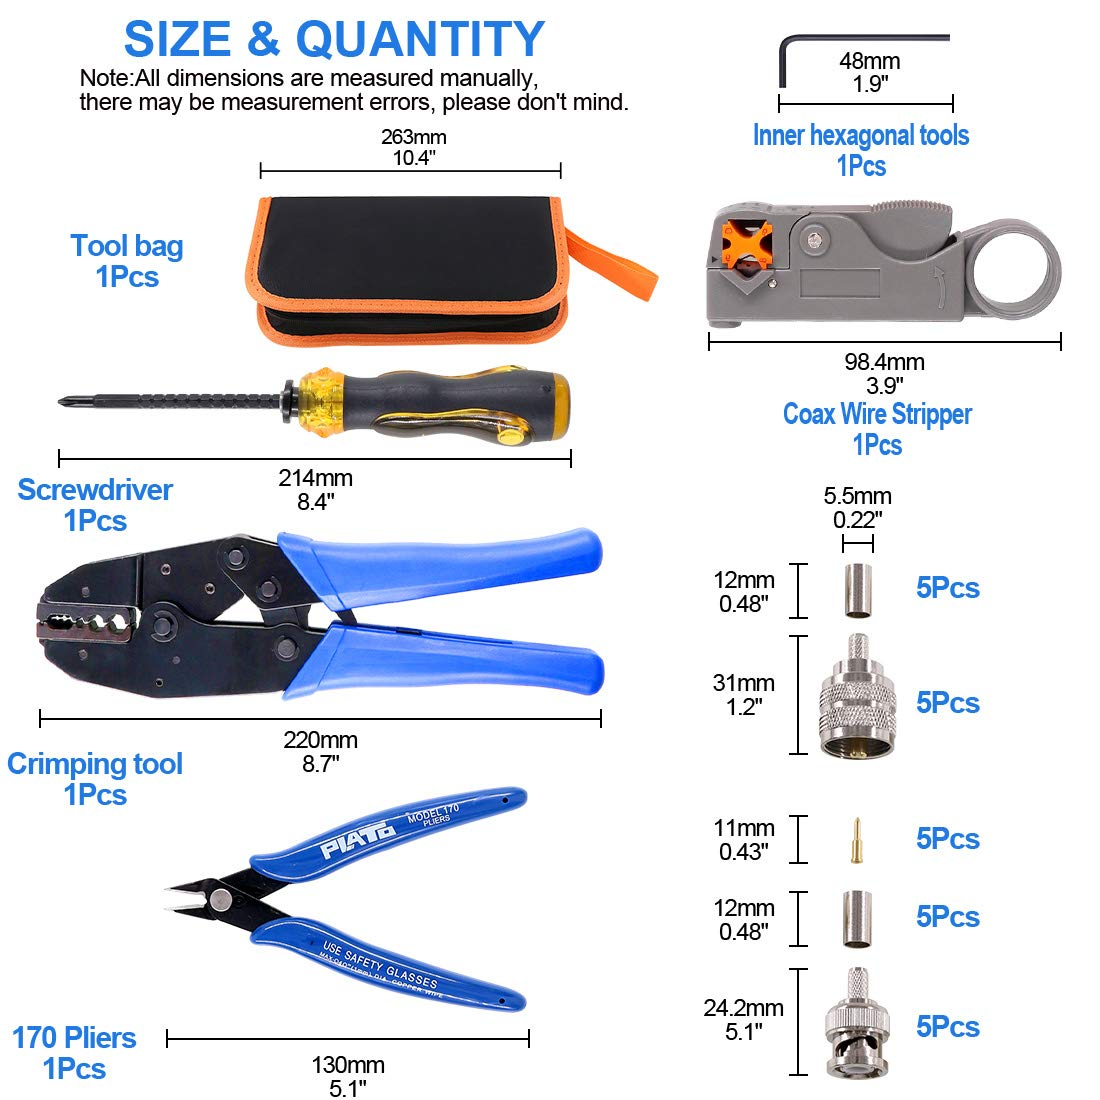 Glarks Coaxial Cable Tool Set, Coax RF Connector Crimping Tool + Coaxial Cable Stripper + BNC/UHF Crimp Male Connectors + Wire Cutter + Screw Driver for RG58, RG59, RG62, RG174 by Glarks (Image #2)